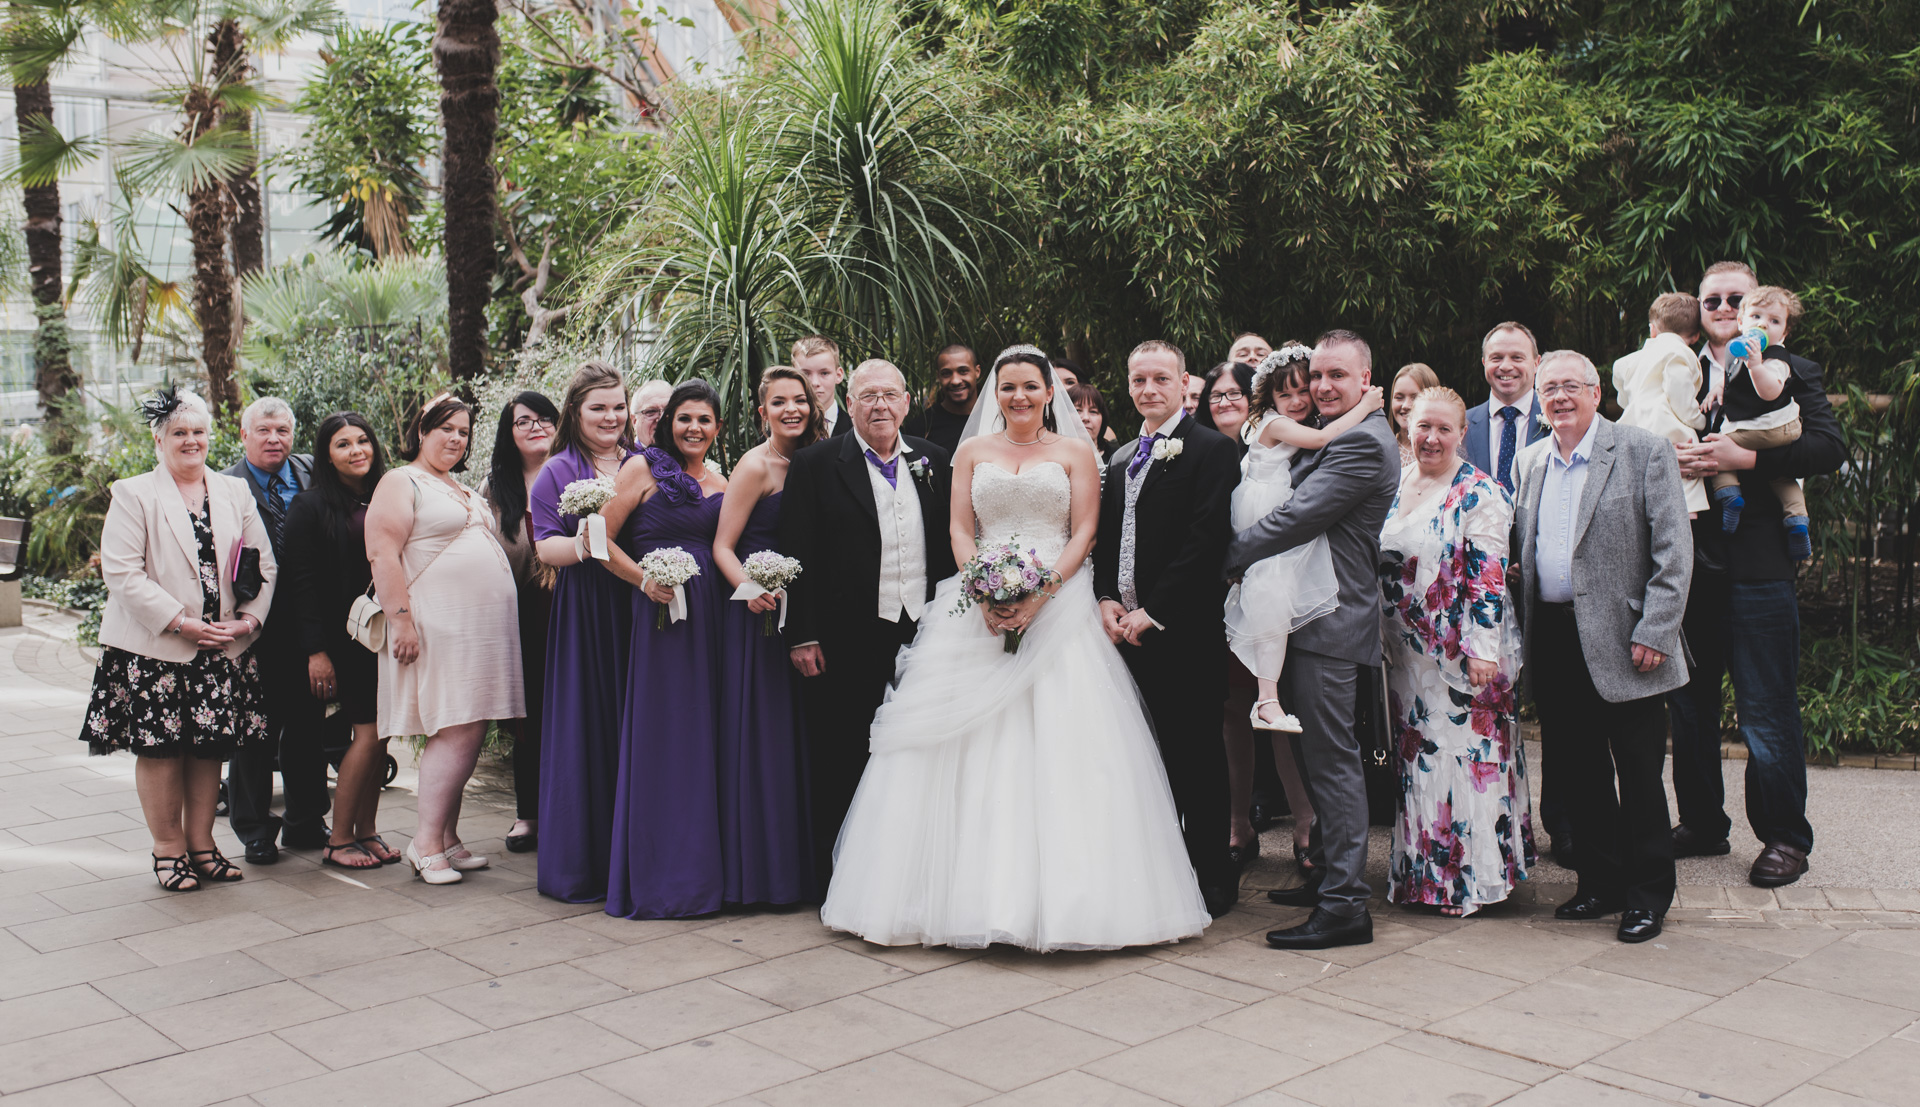 Sheffield Winter Garden Wedding Group Photo